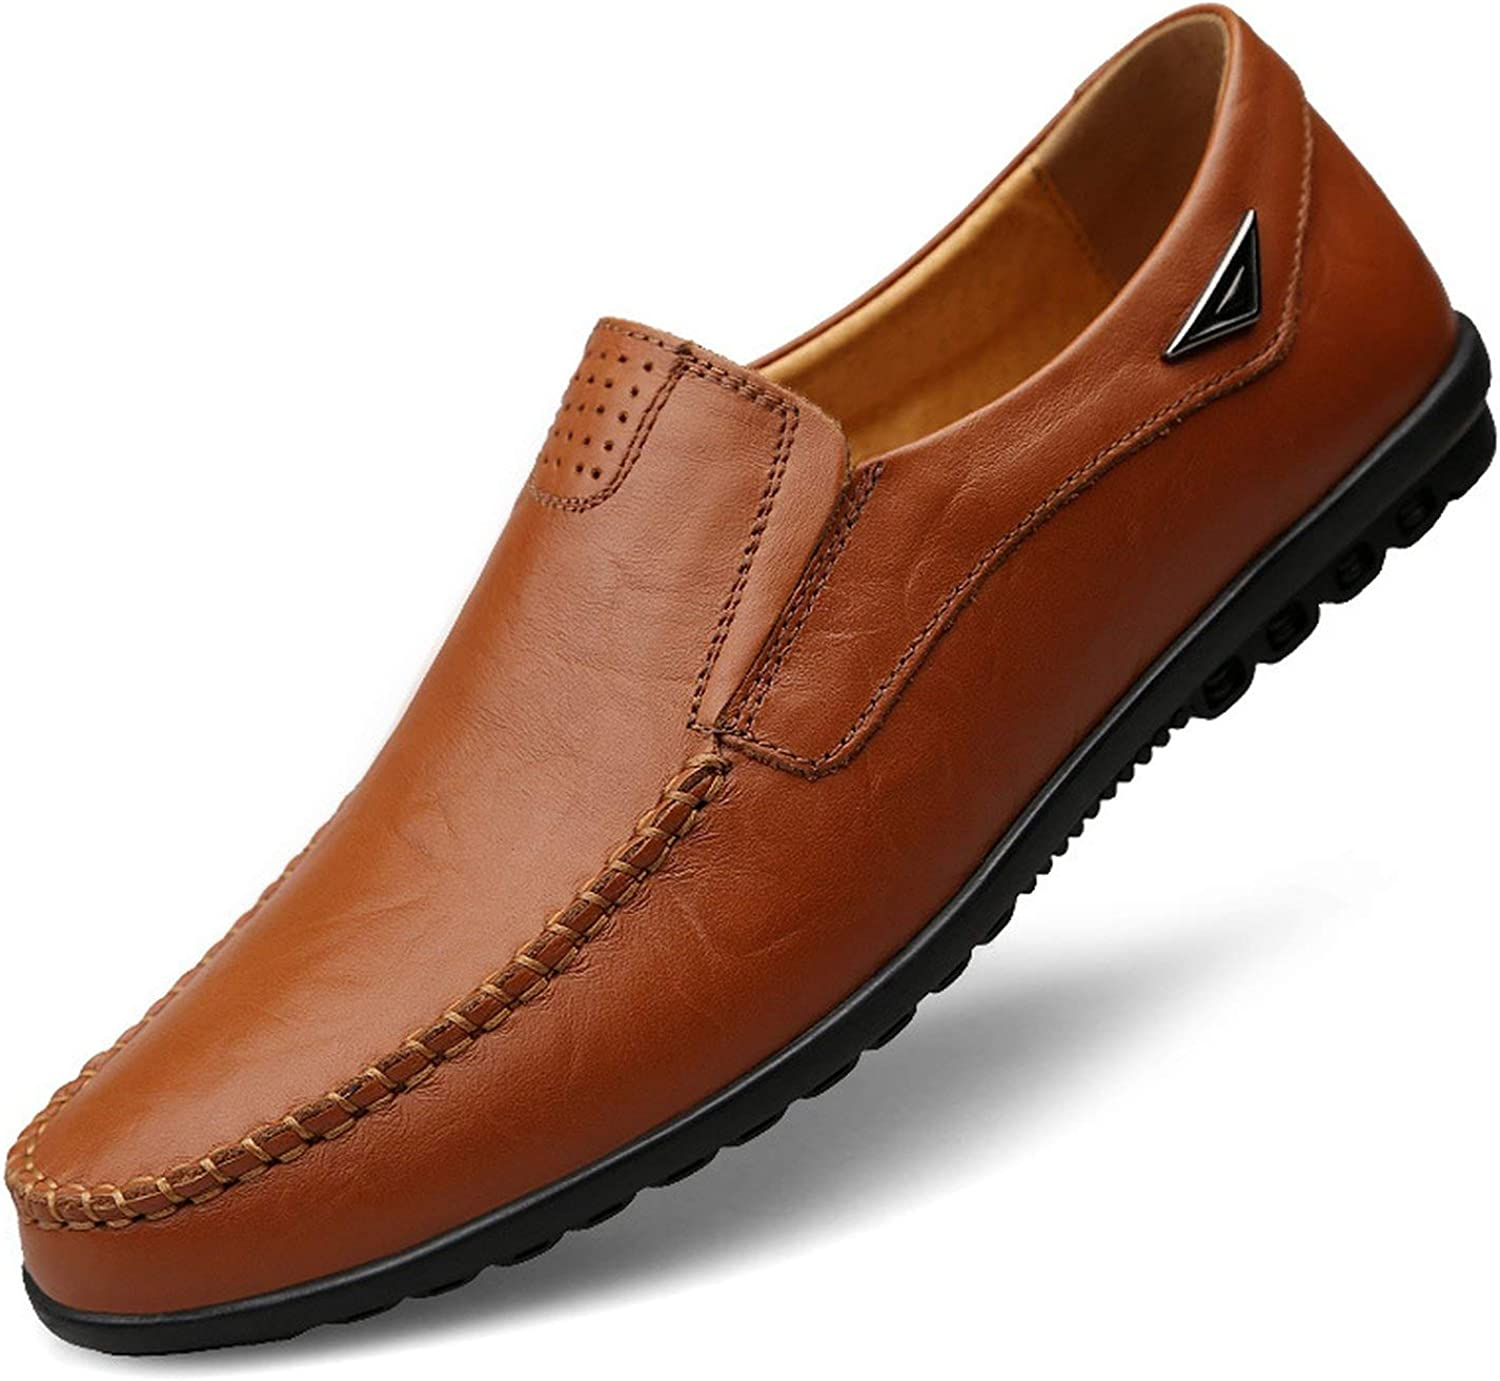 FJ-Direct Genuine Leather Men Casual shoes Luxury Brand 2019 Mens Loafers Moccasins Breathable Slip on Black Driving shoes Plus Size 37-47,Red Brown,8